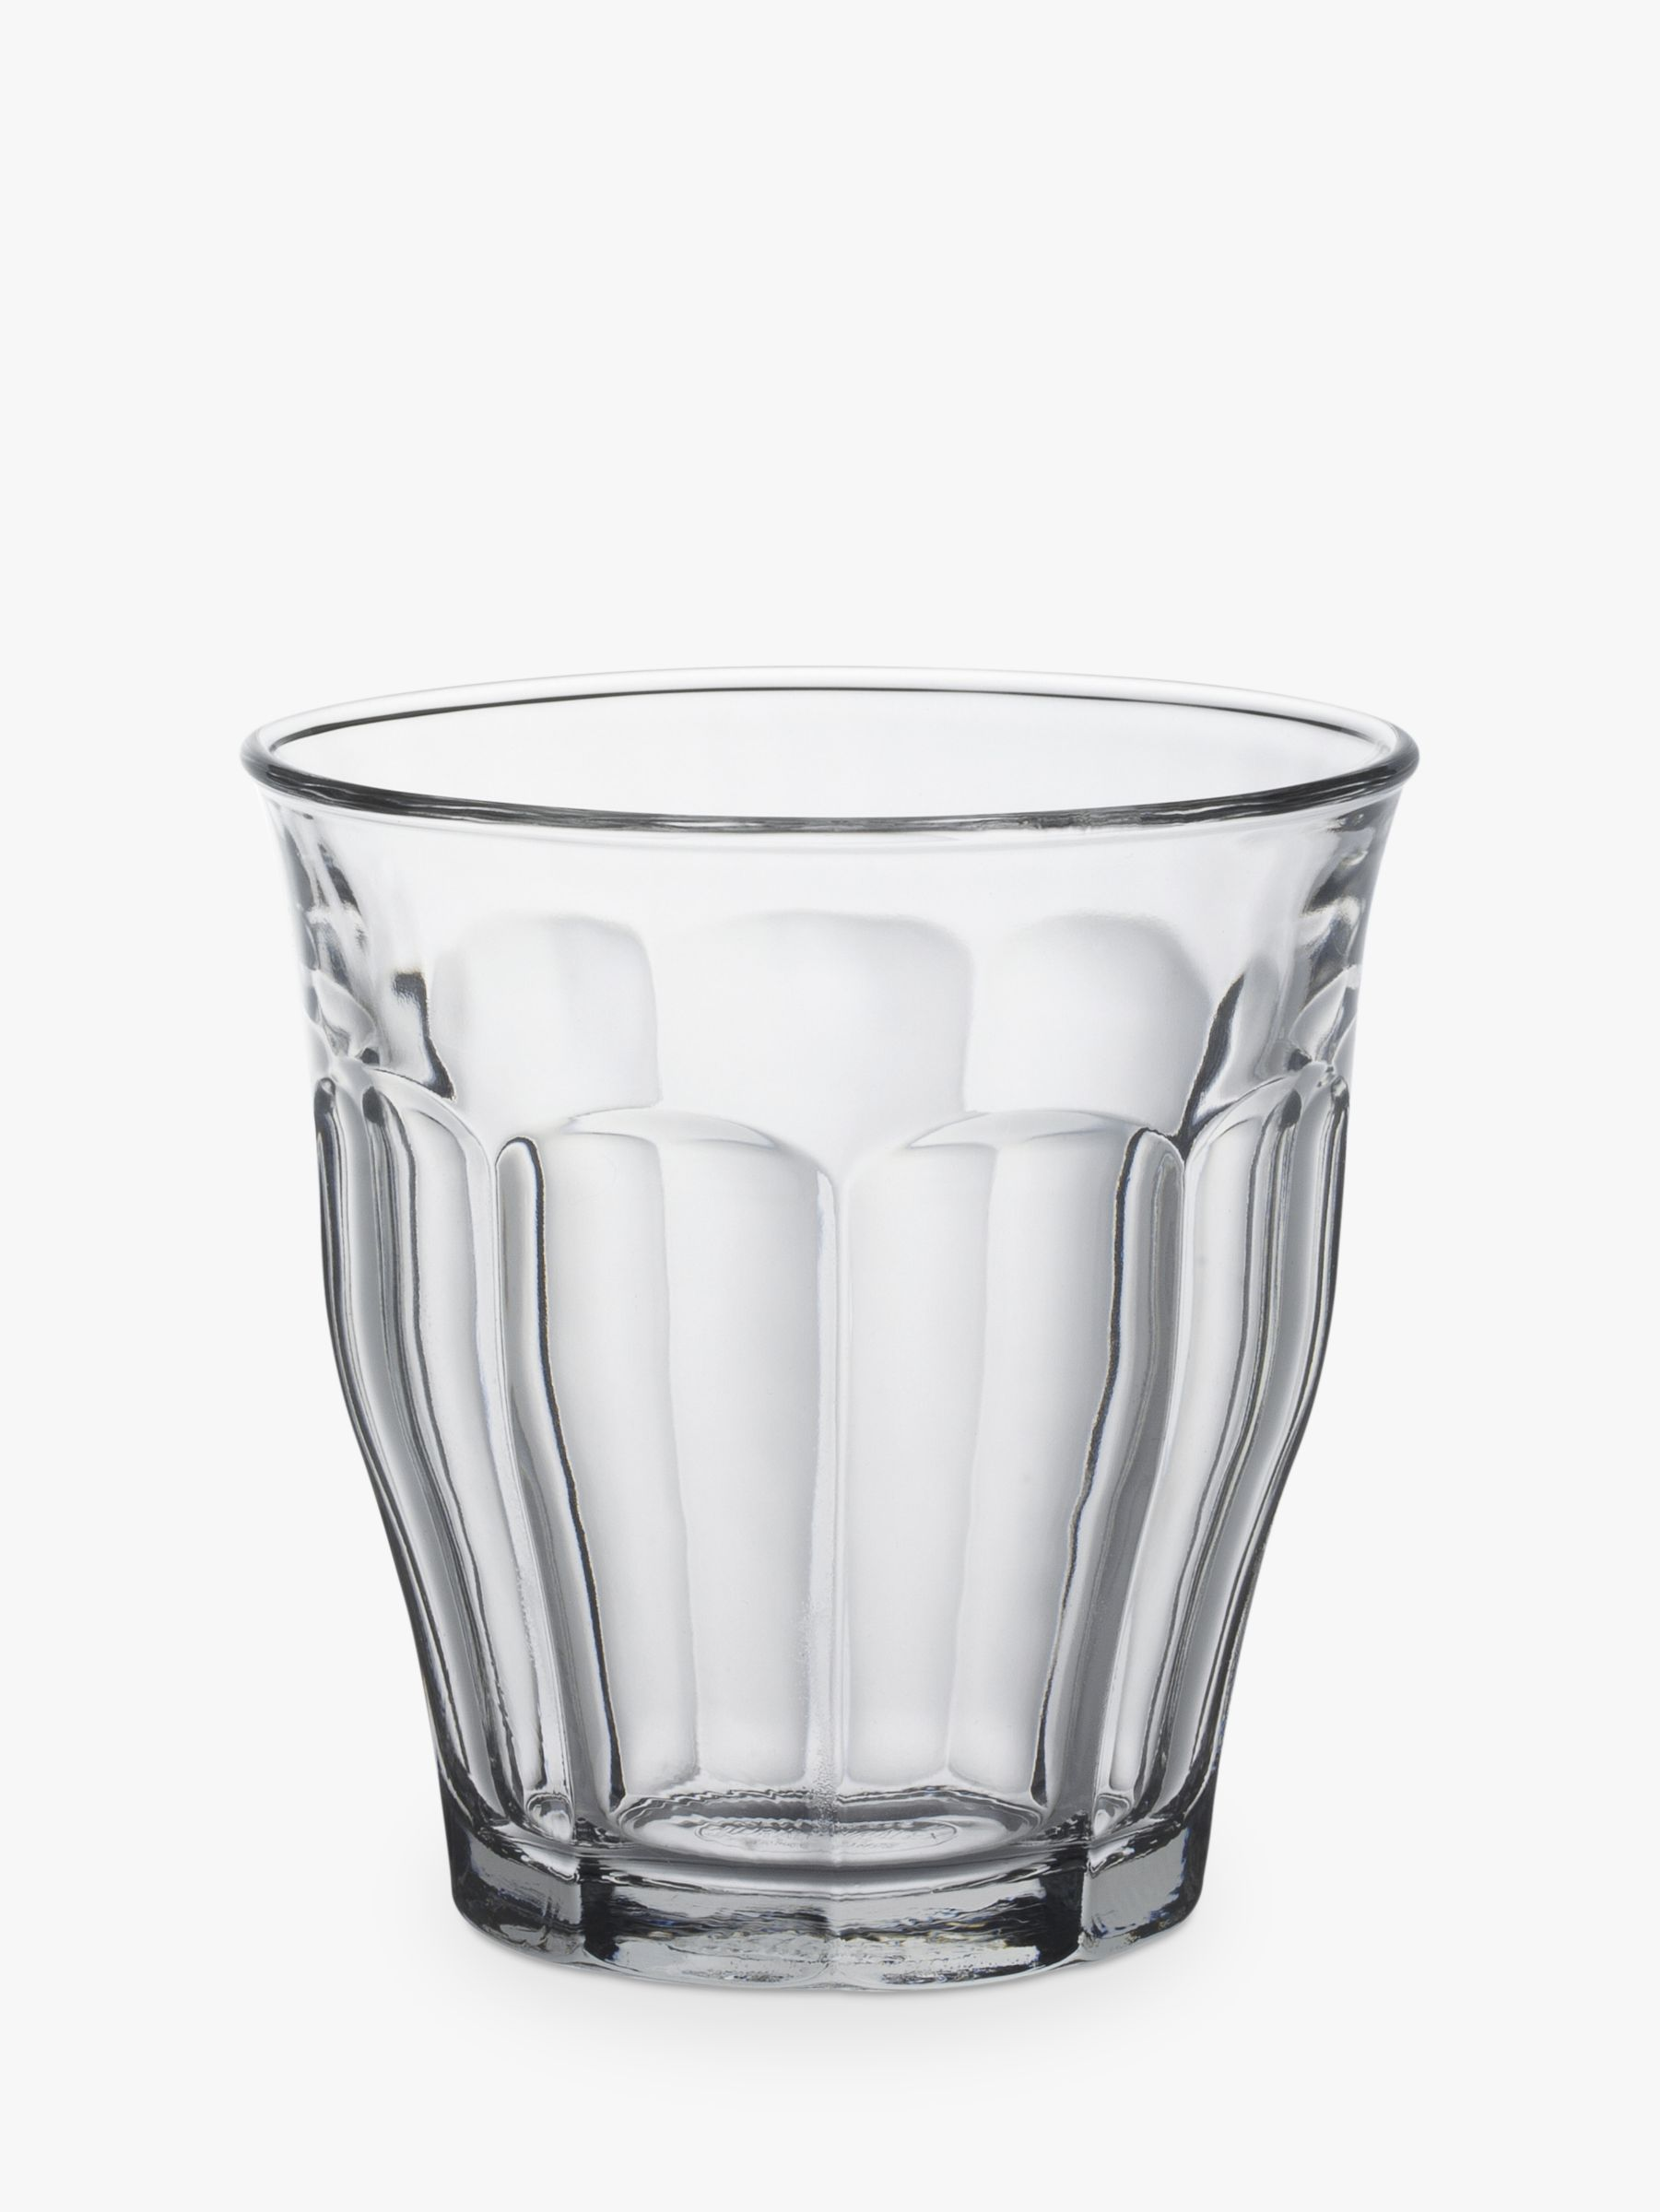 Duralex Duralex Picardie Tumblers, Set of 4, Clear, 250ml